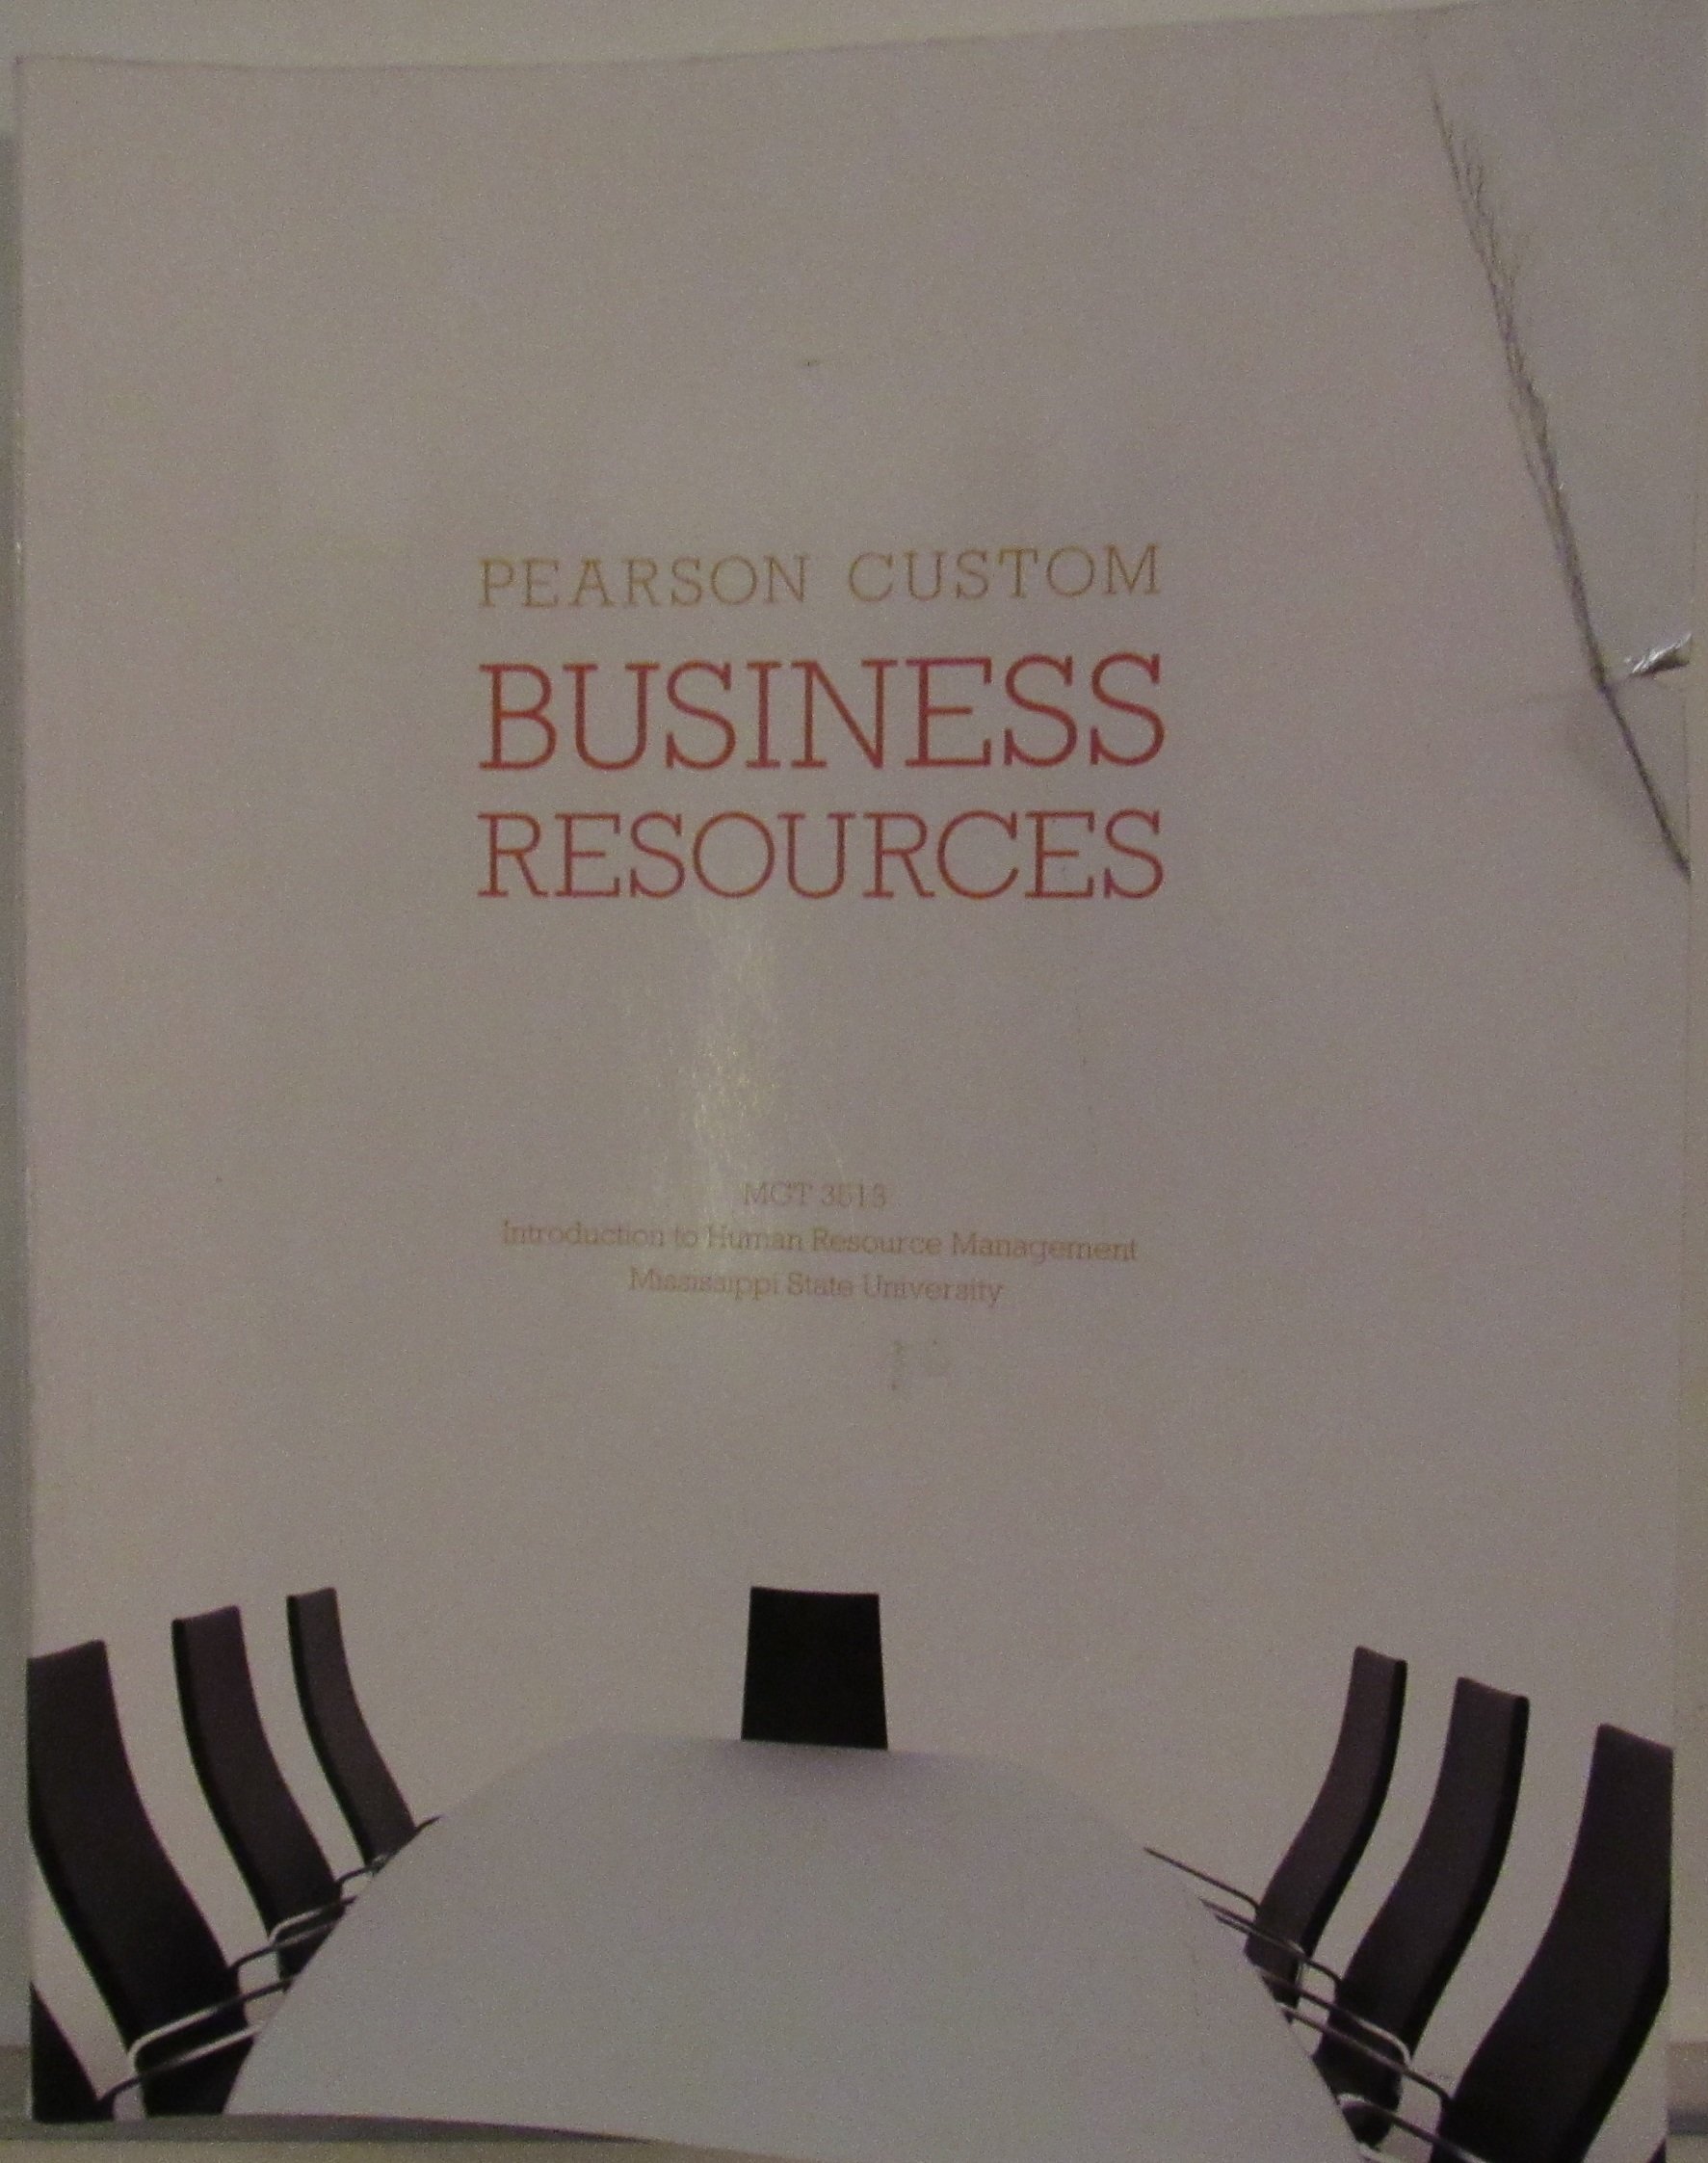 Download Business Resources: MGT 3513 Introduction to Human Resource Management MSU pdf epub